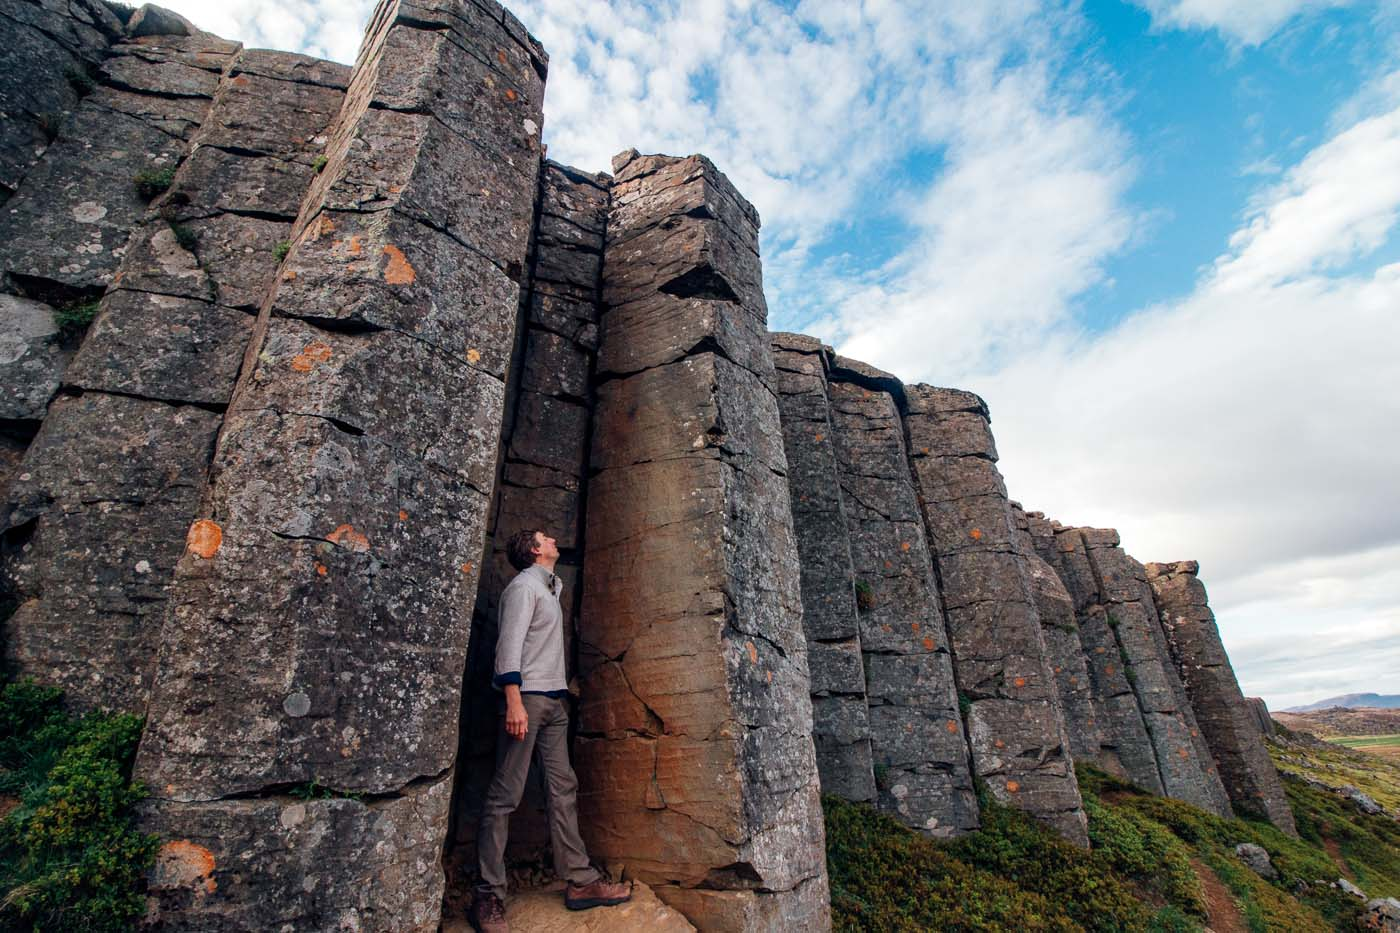 Man standing among the basalt columns of the Gerduberg Cliffs